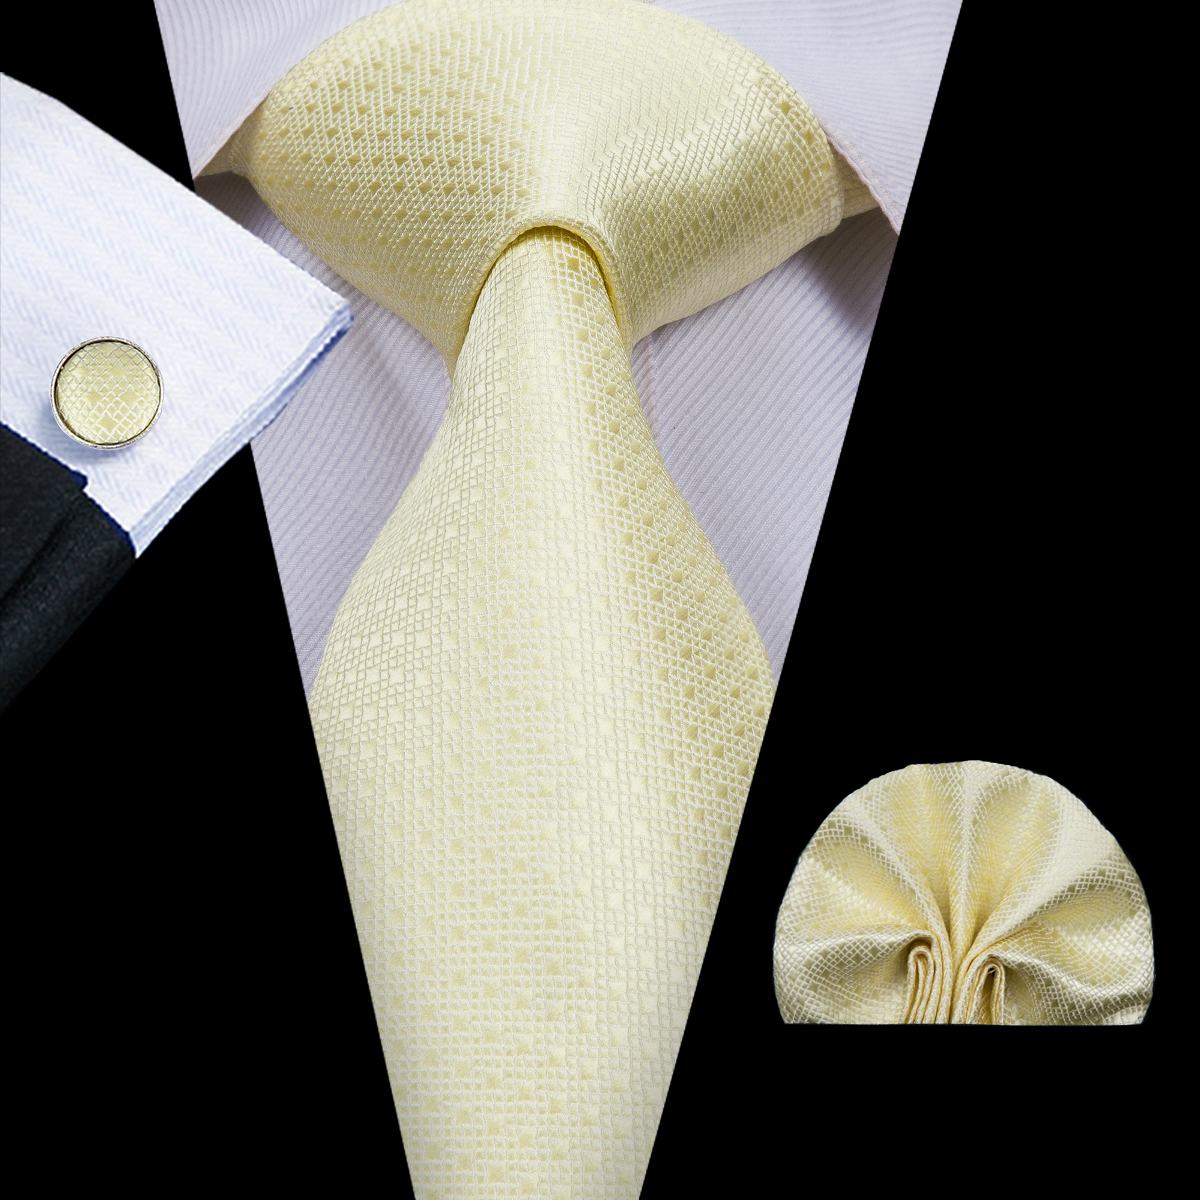 NEW $300 DOLCE /& GABBANA Scarf Men/'s Solid Beige Silk Wrap Necktie Cravat